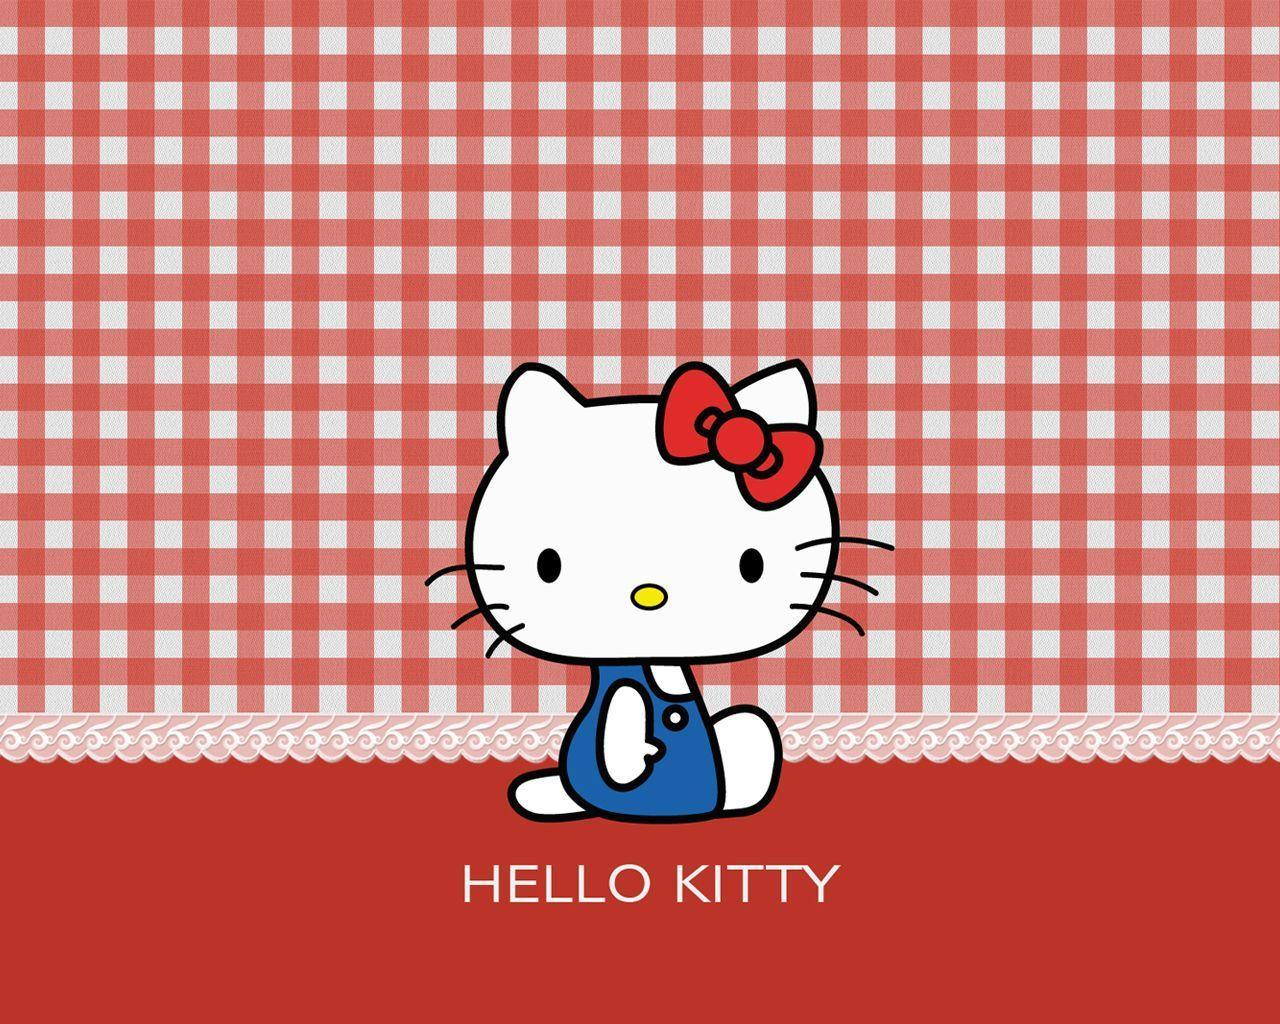 Most Inspiring Wallpaper Hello Kitty Android - zTc5xOV  Best Photo Reference_939734.jpg